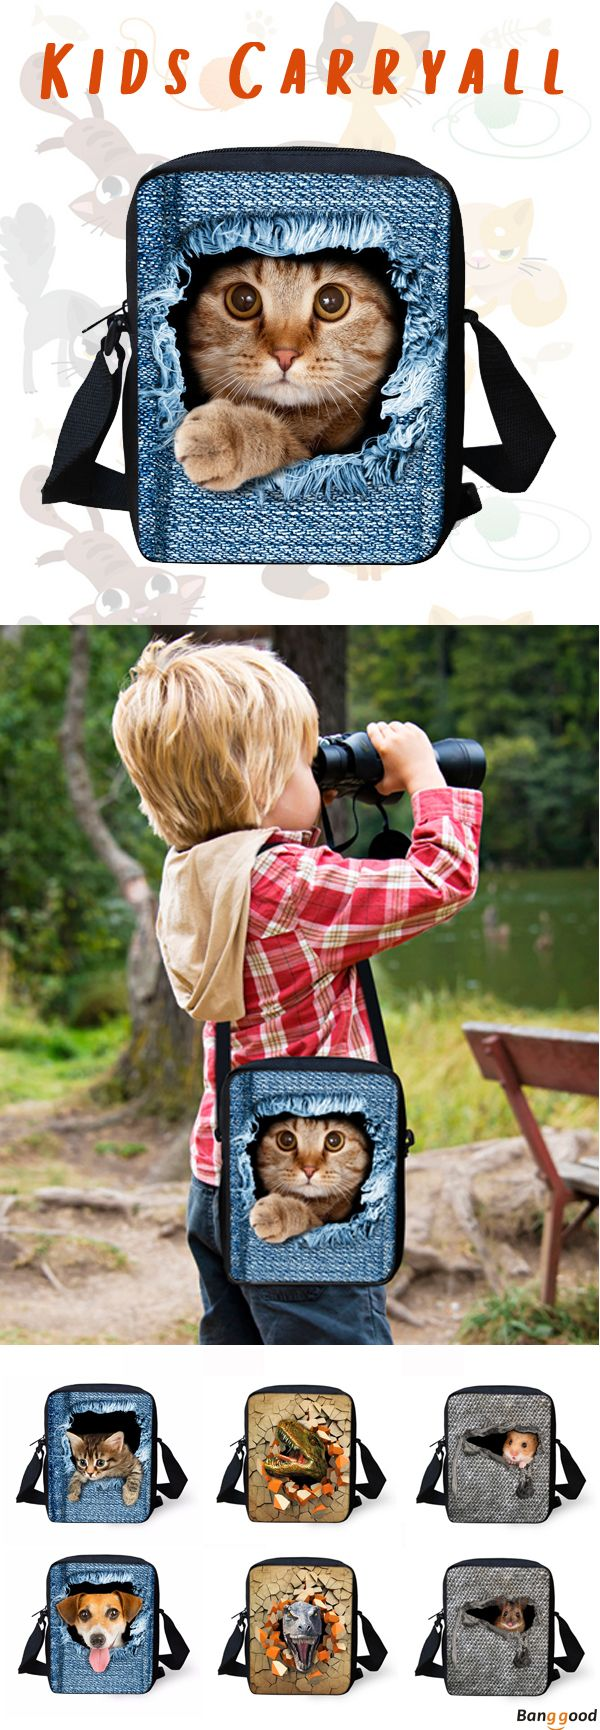 Carryall for Kids. 20+ Patterns Available. 53% OFF. Recommend for you.